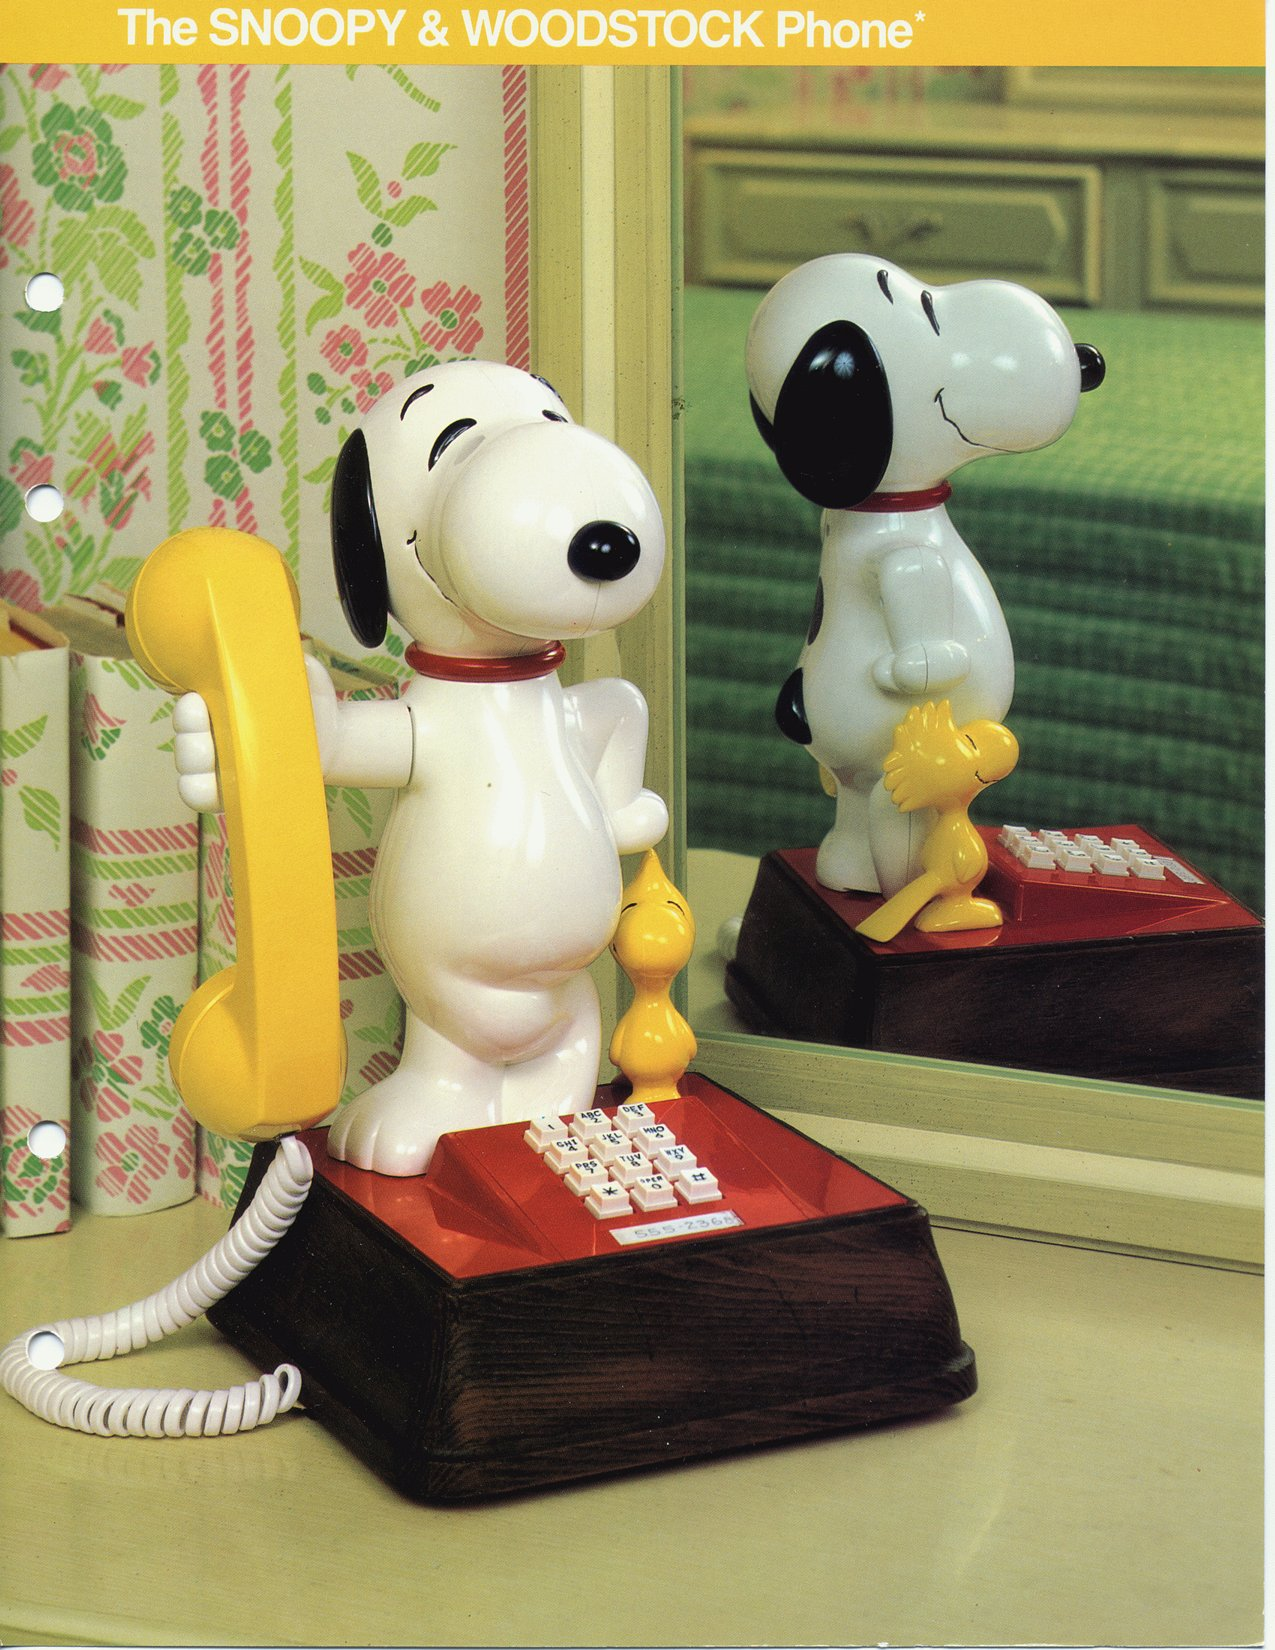 Snoopy Telephone